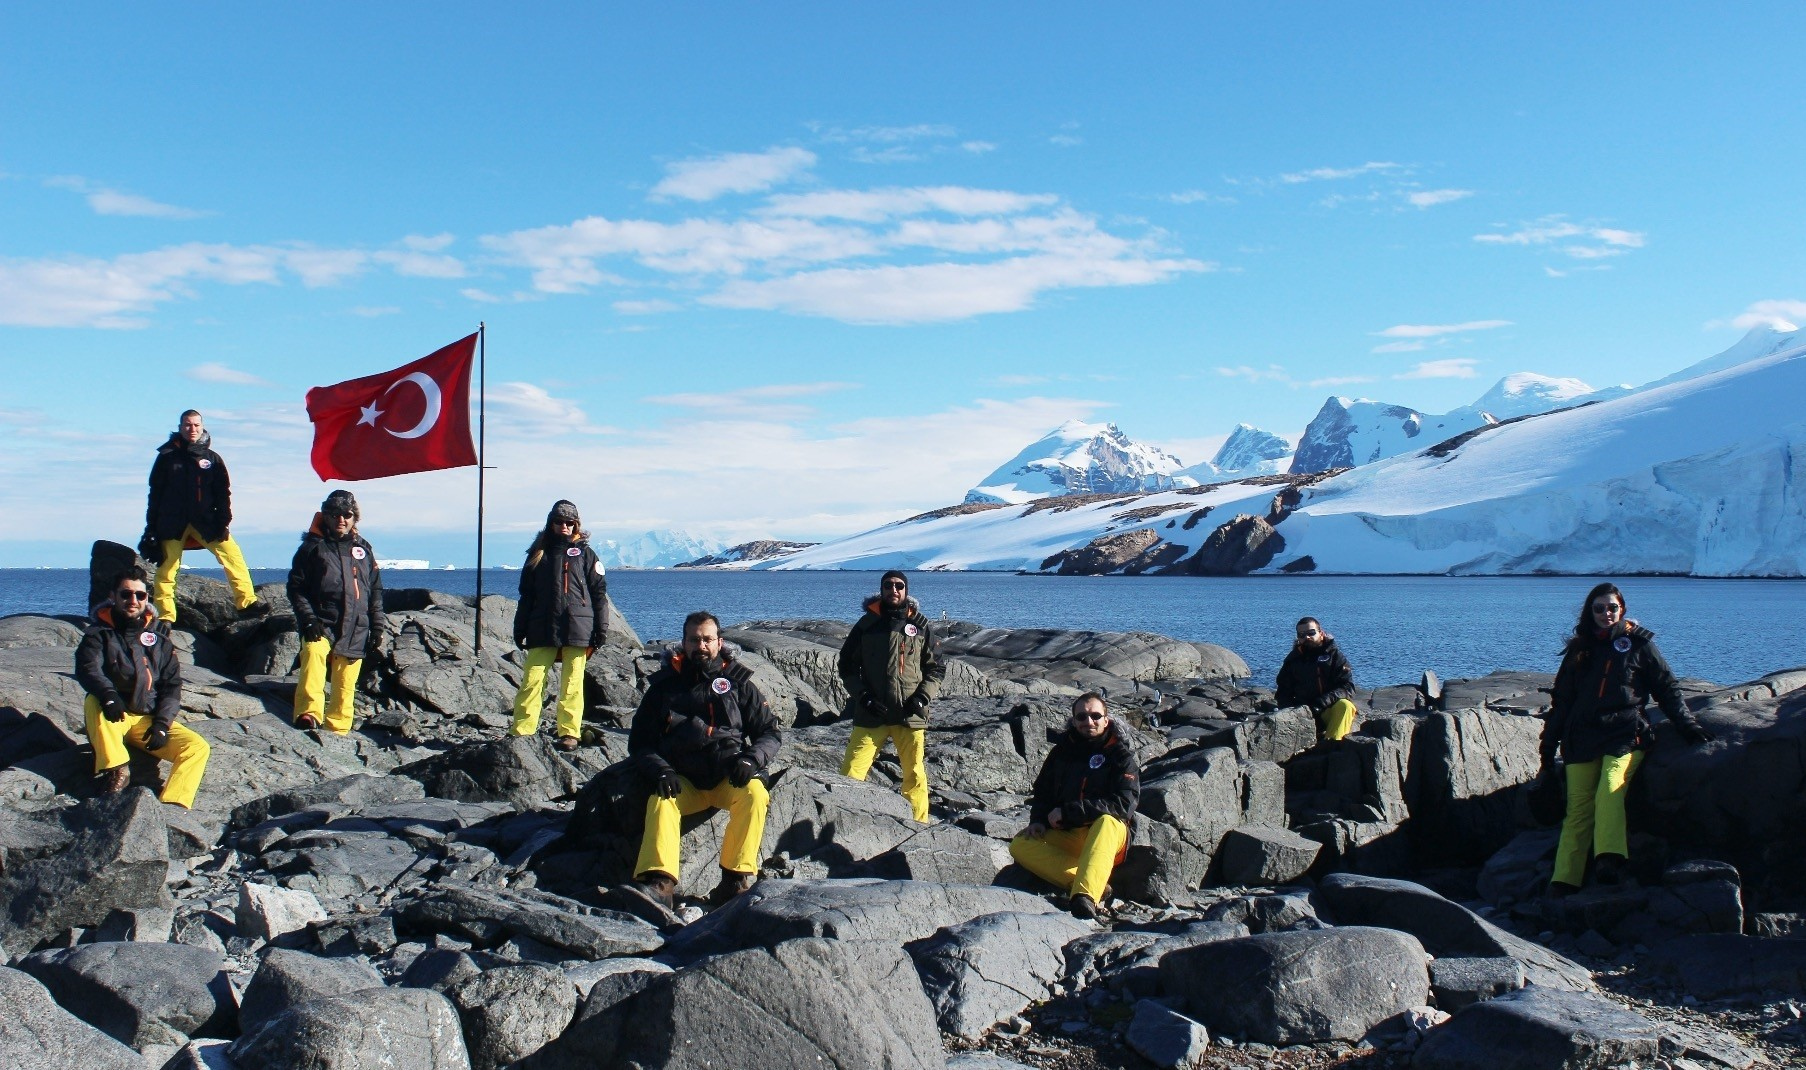 Scientists pose in front of a Turkish flag during an expedition in Antarctica last year.